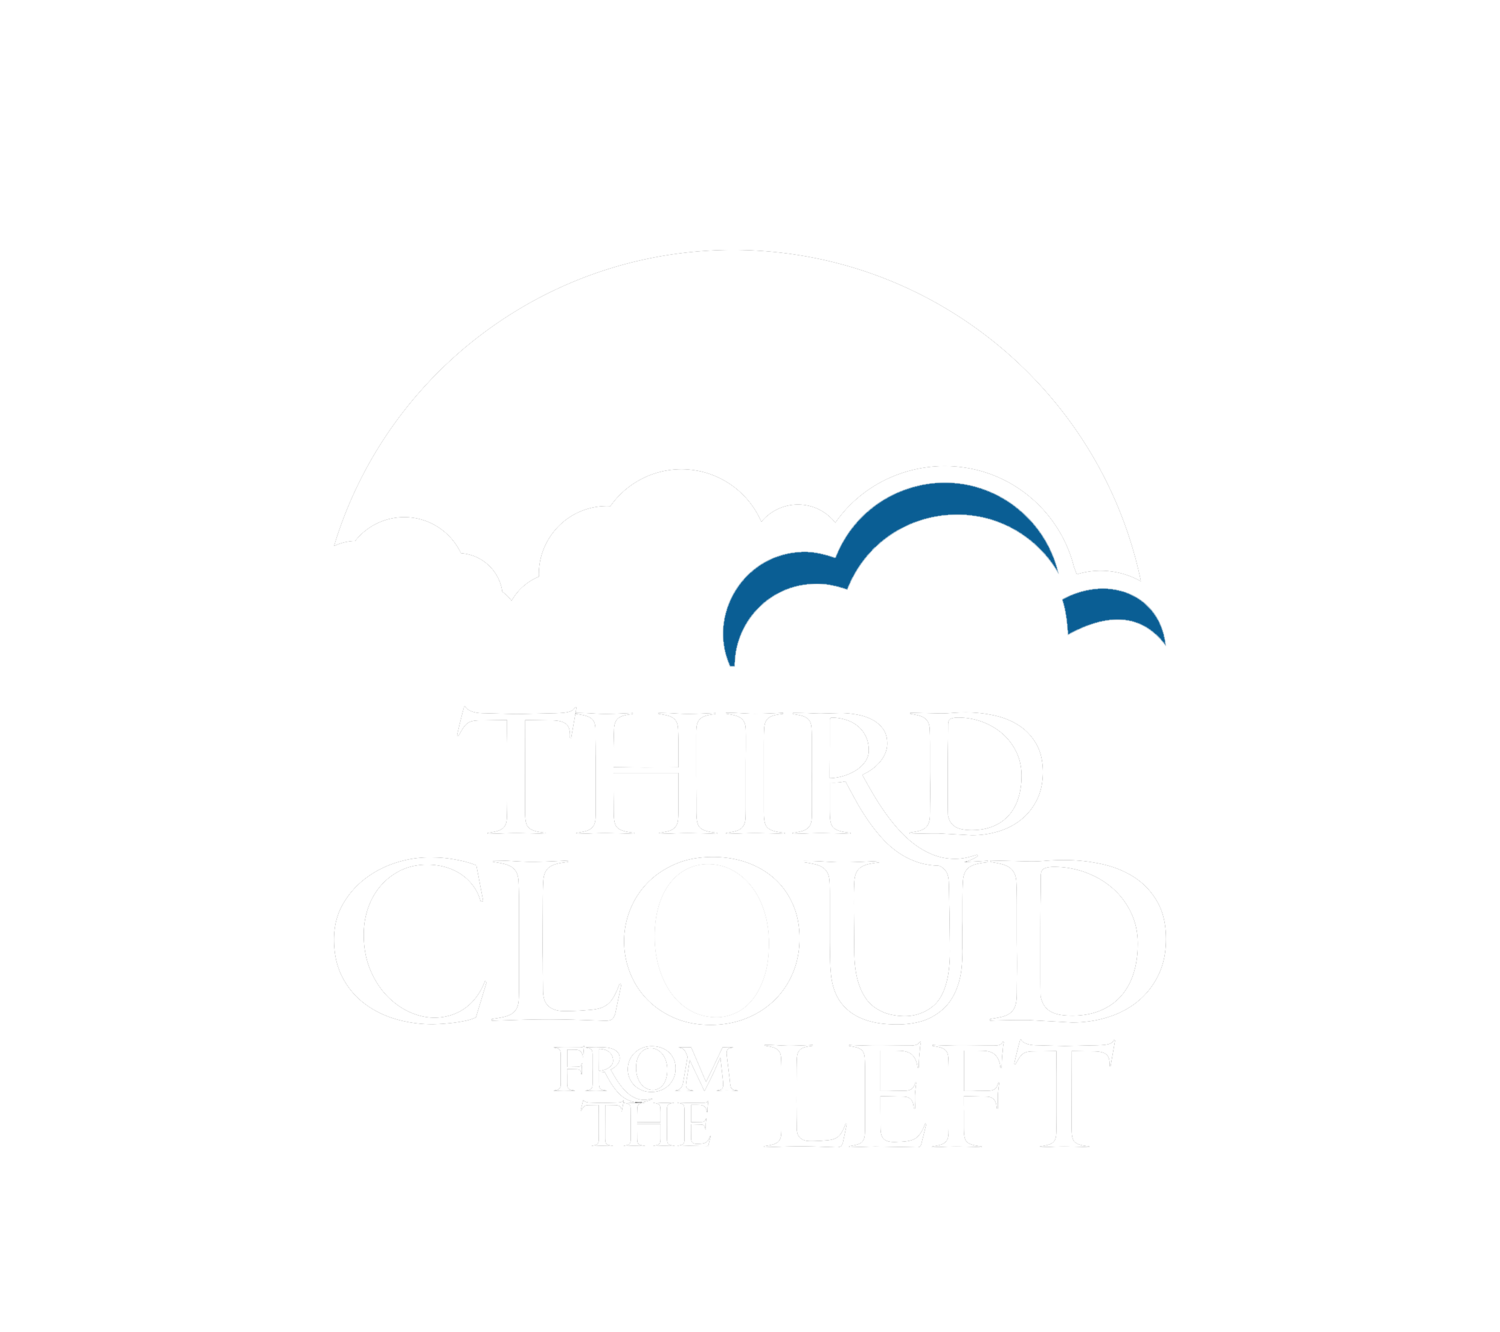 Third Cloud from the Left